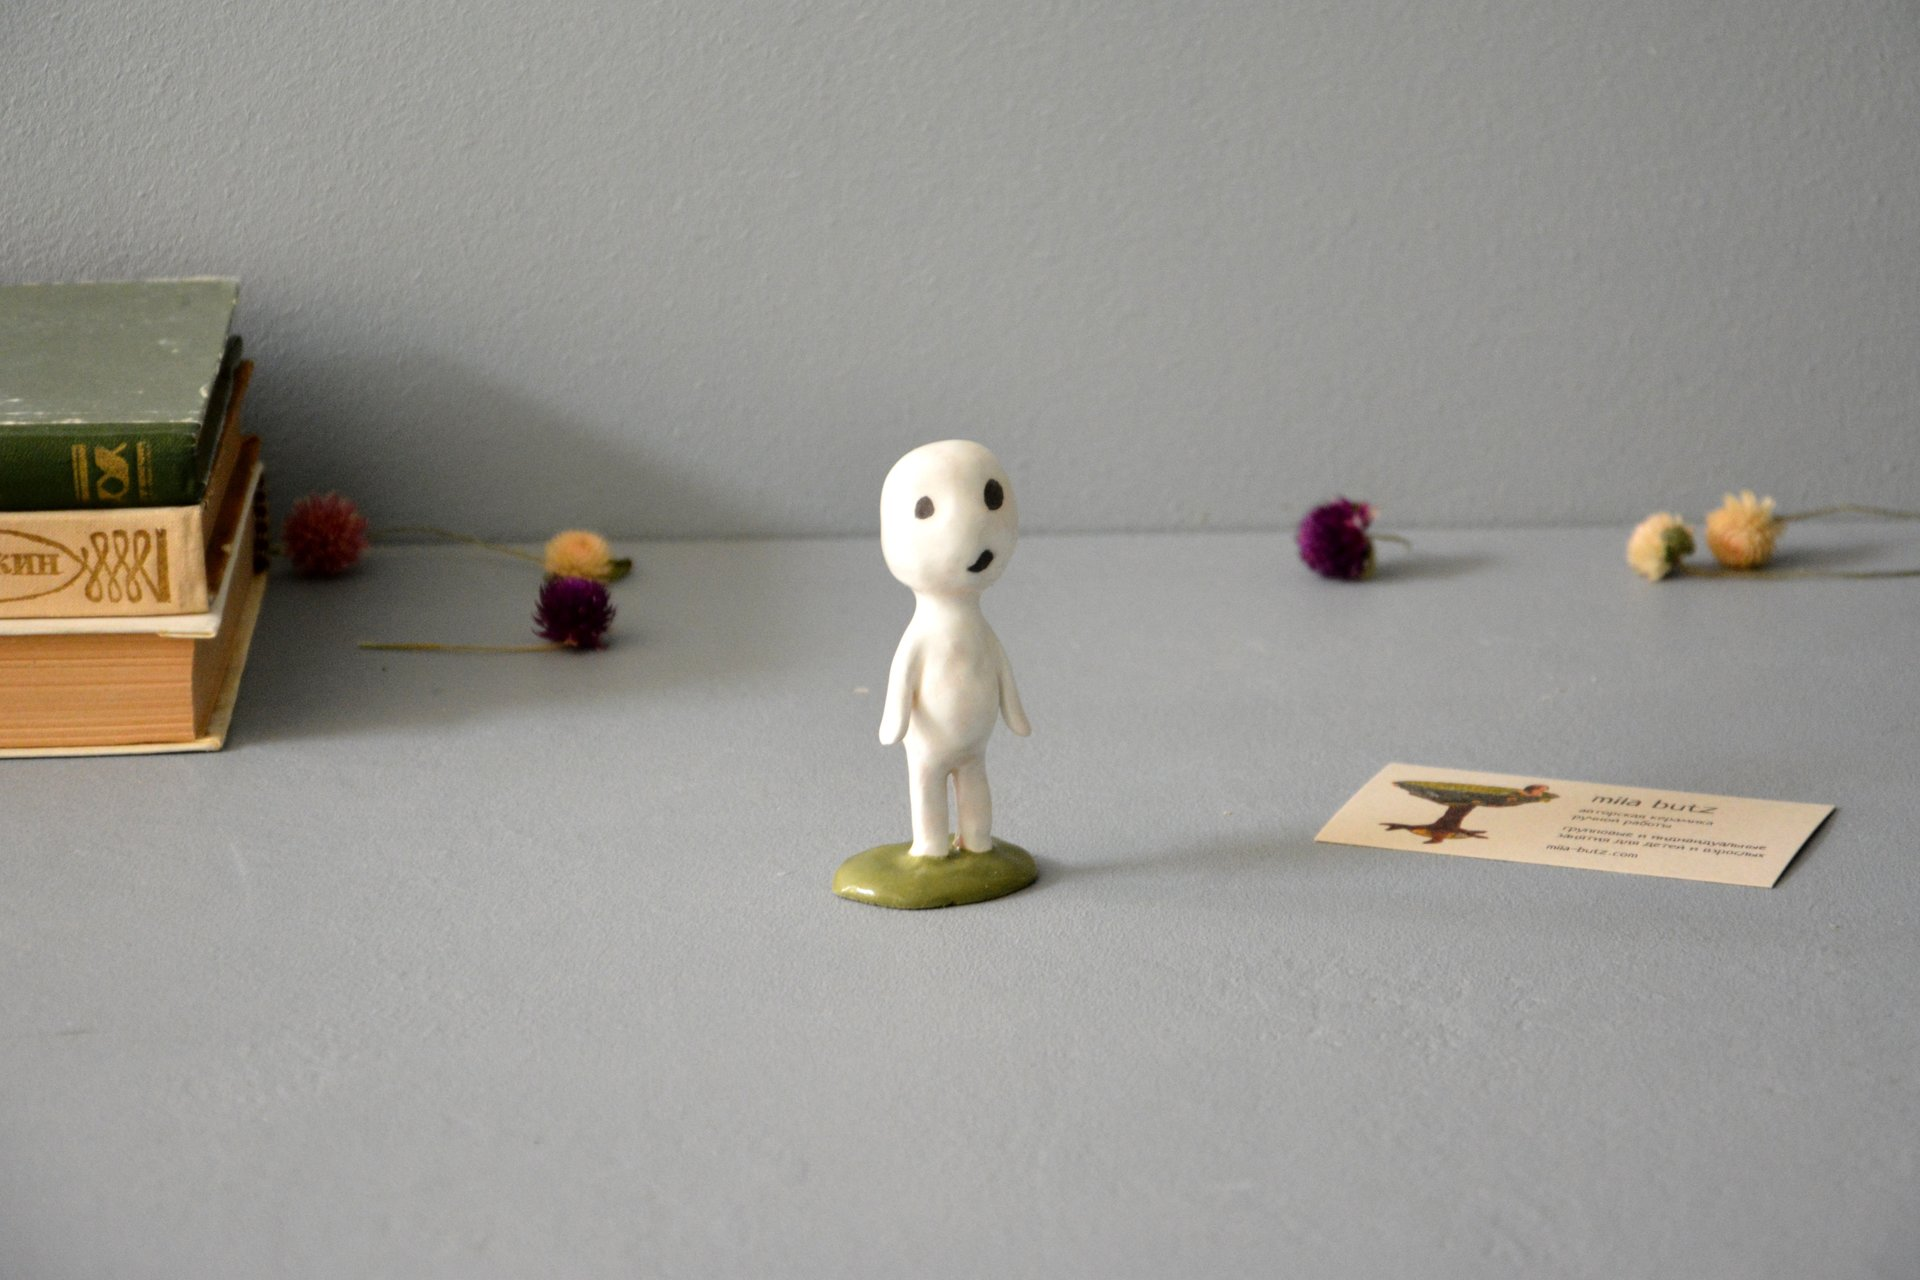 A figurine of the whispering Kodama tree spirit, height - 8.5 cm, photo 1 of 4.